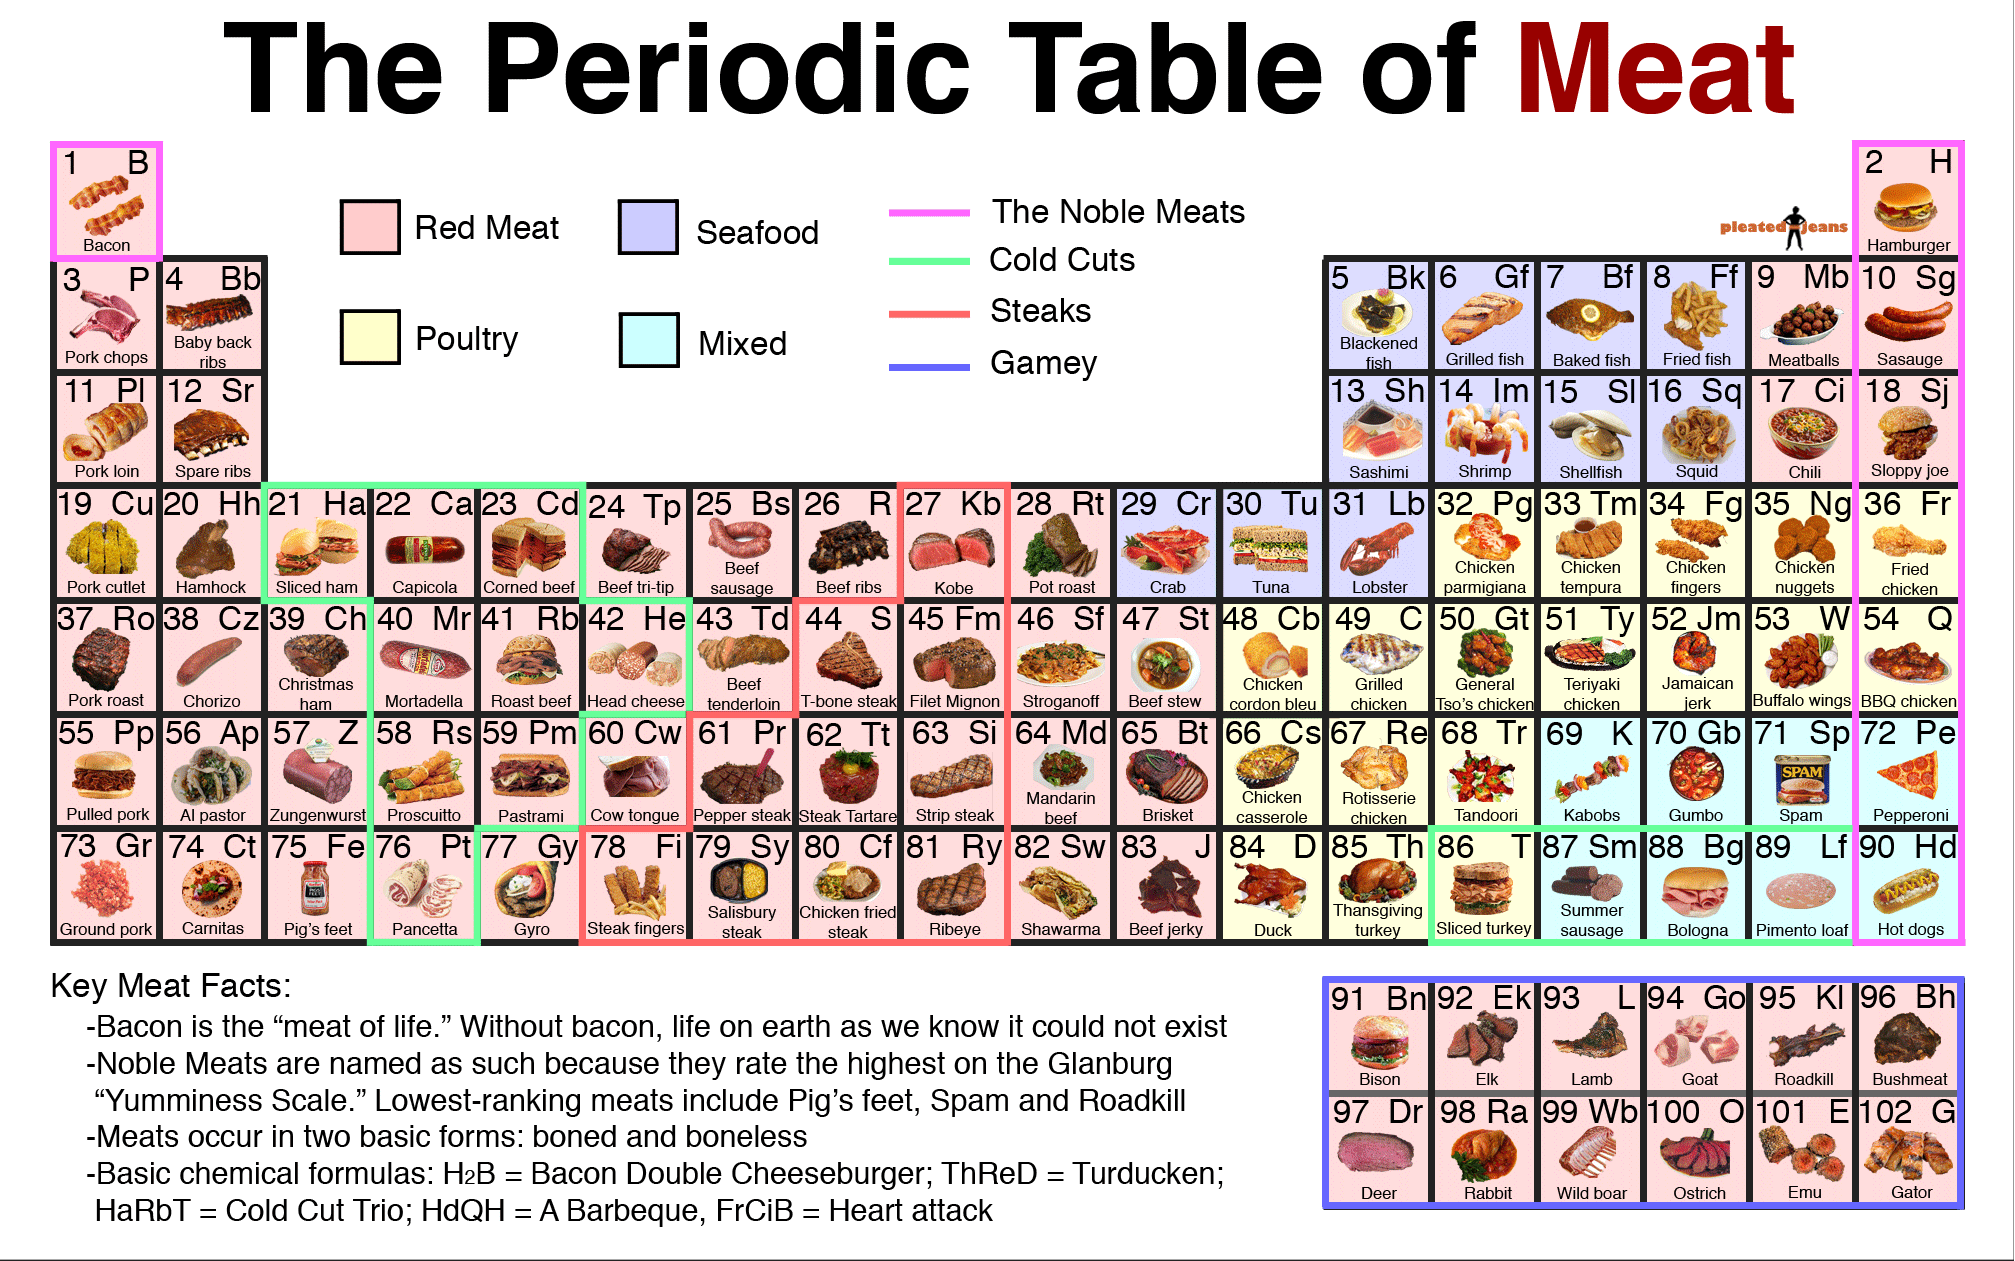 https://pleatedjeans.files.wordpress.com/2010/07/periodic-table-of-meat.png